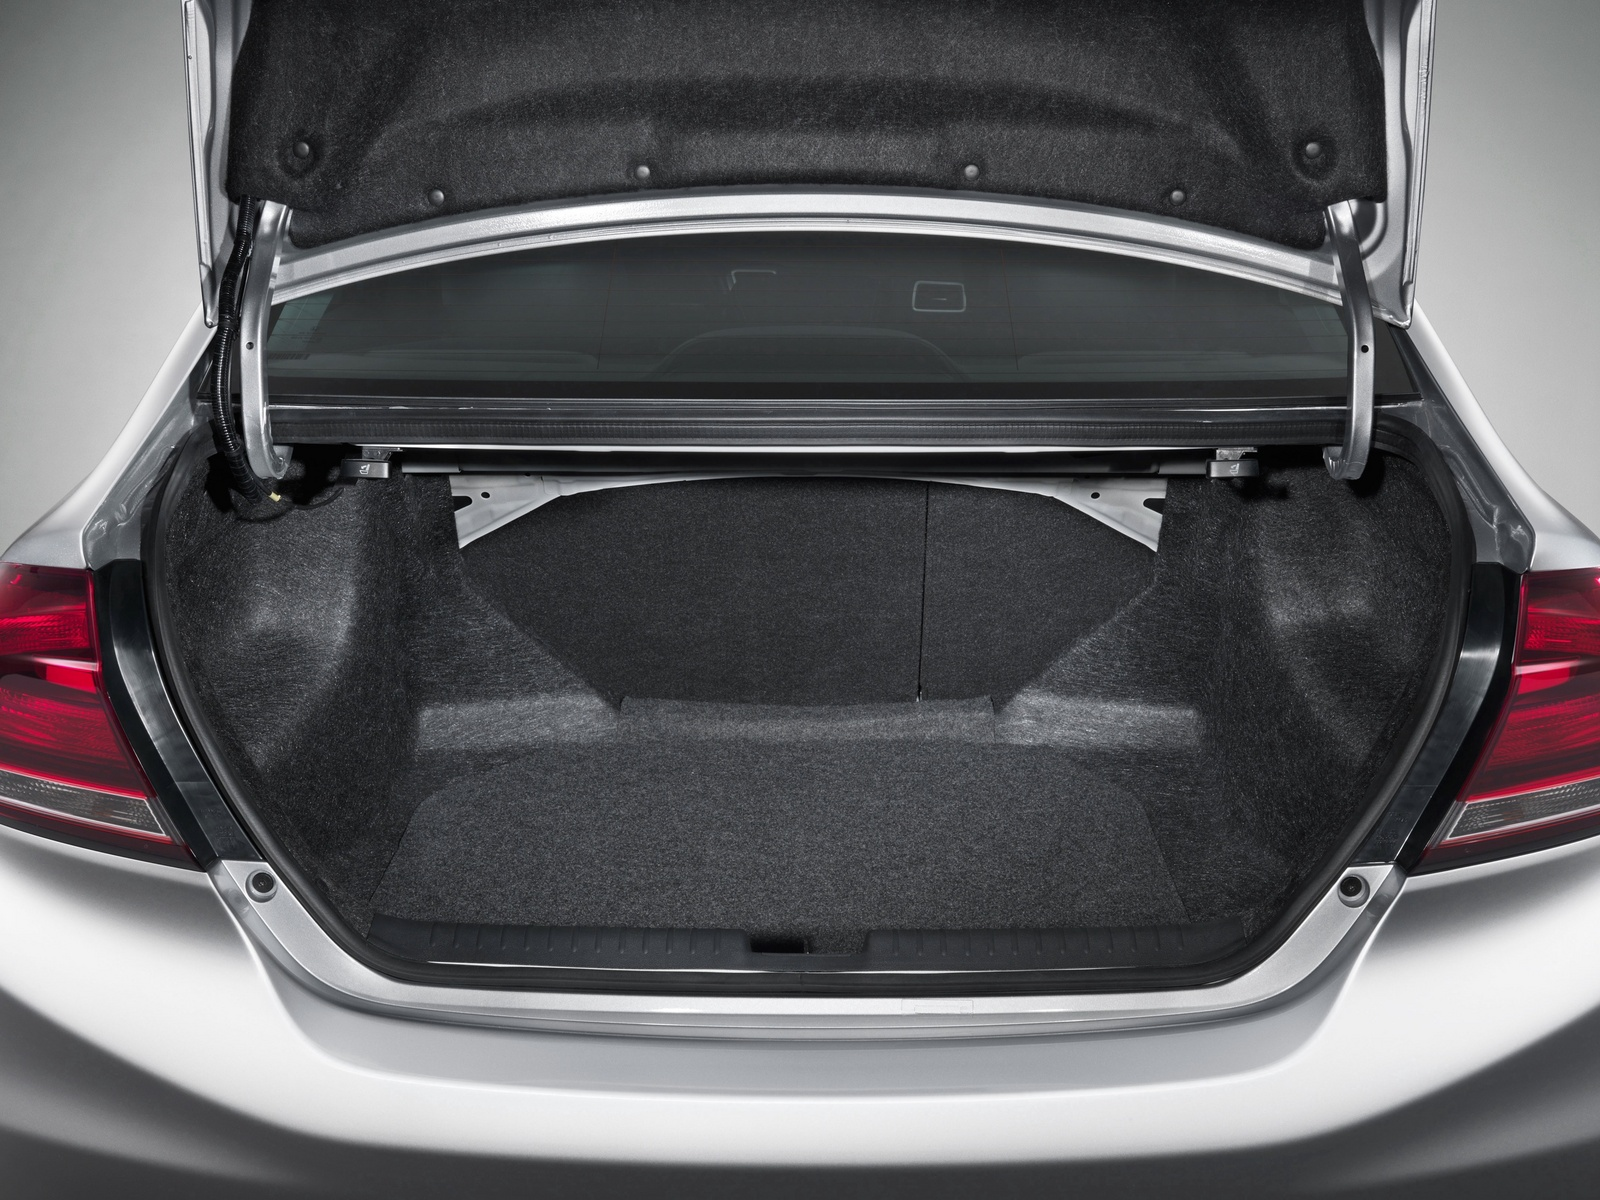 2013 Honda Civic, The Civic's trunk, form_and_function, manufacturer, interior